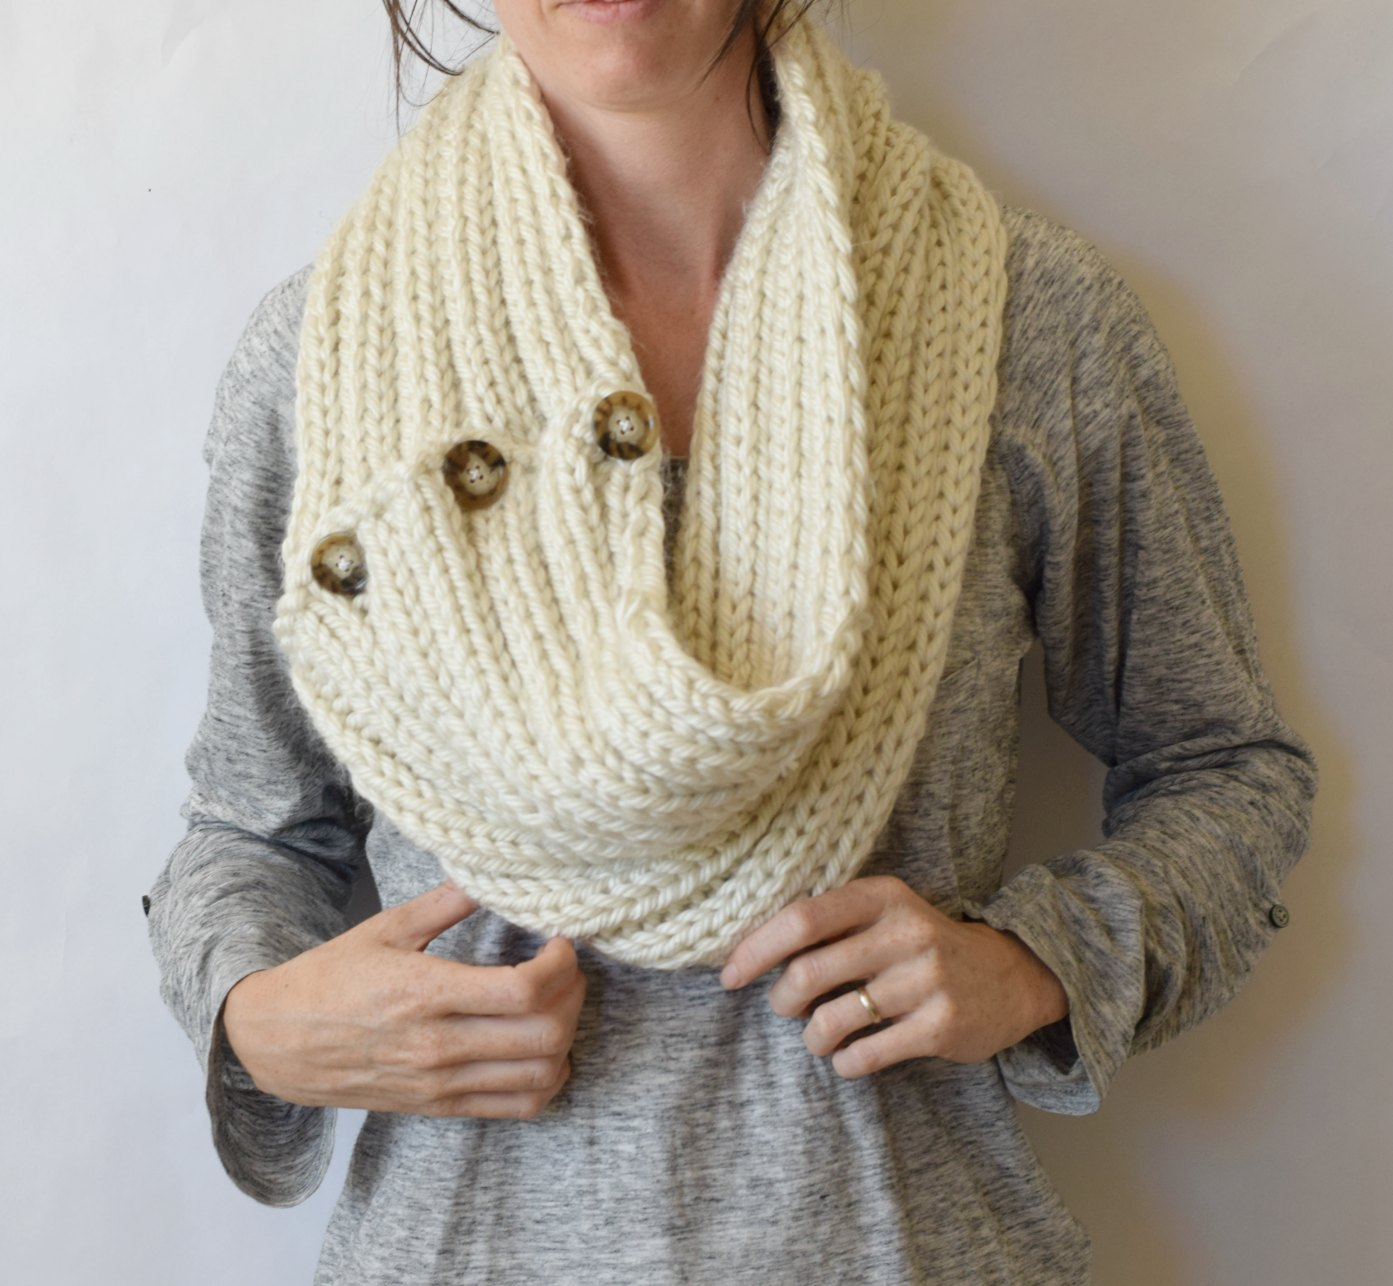 Cowl Knit Patterns Two Ways Giant Knit Ribbed Cowl Pattern Mama In A Stitch